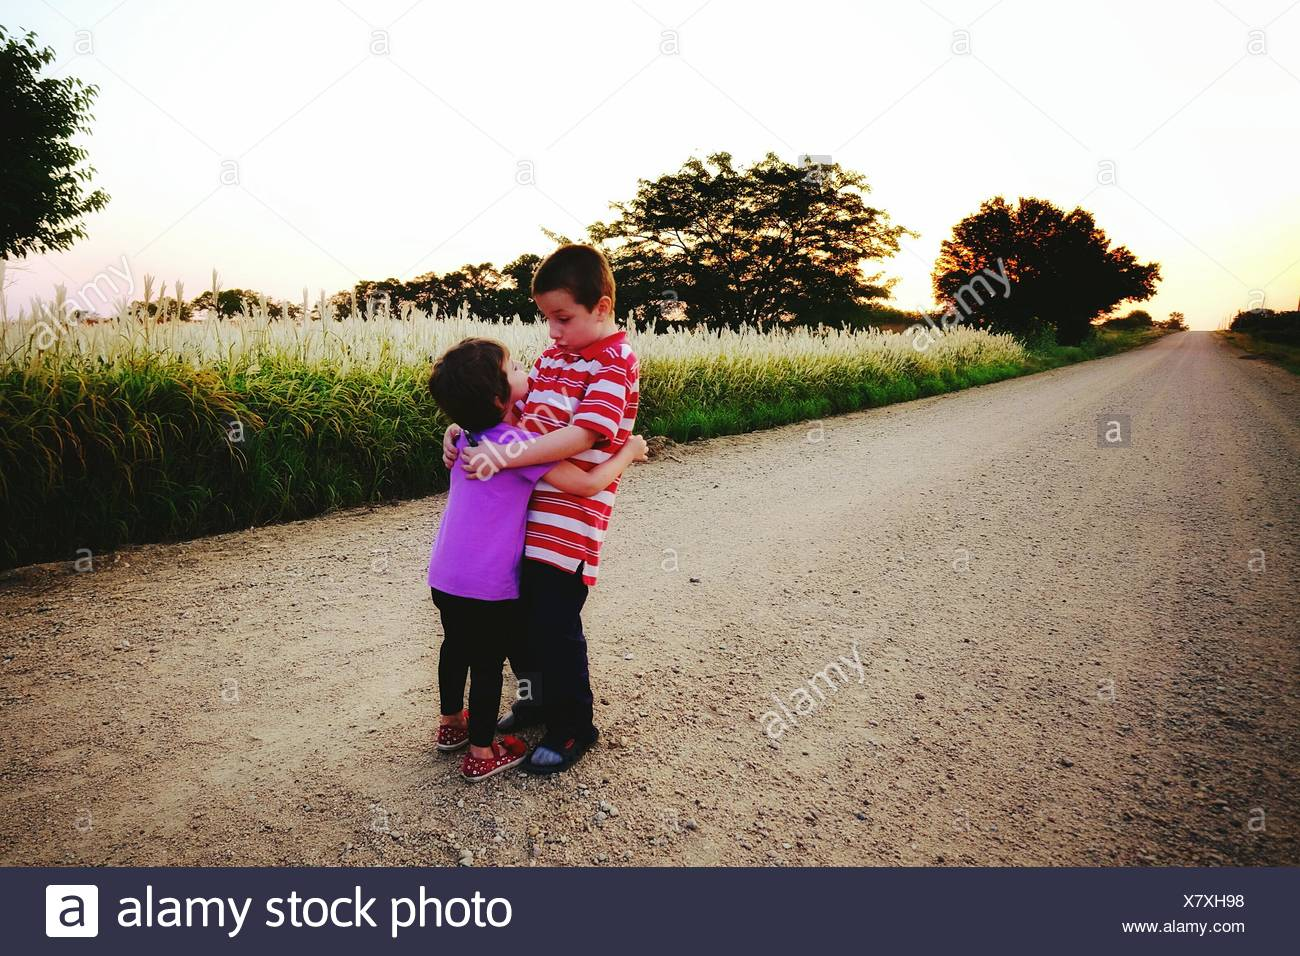 Brother And Sister Giving An Hug On The Road By Field - Stock Image